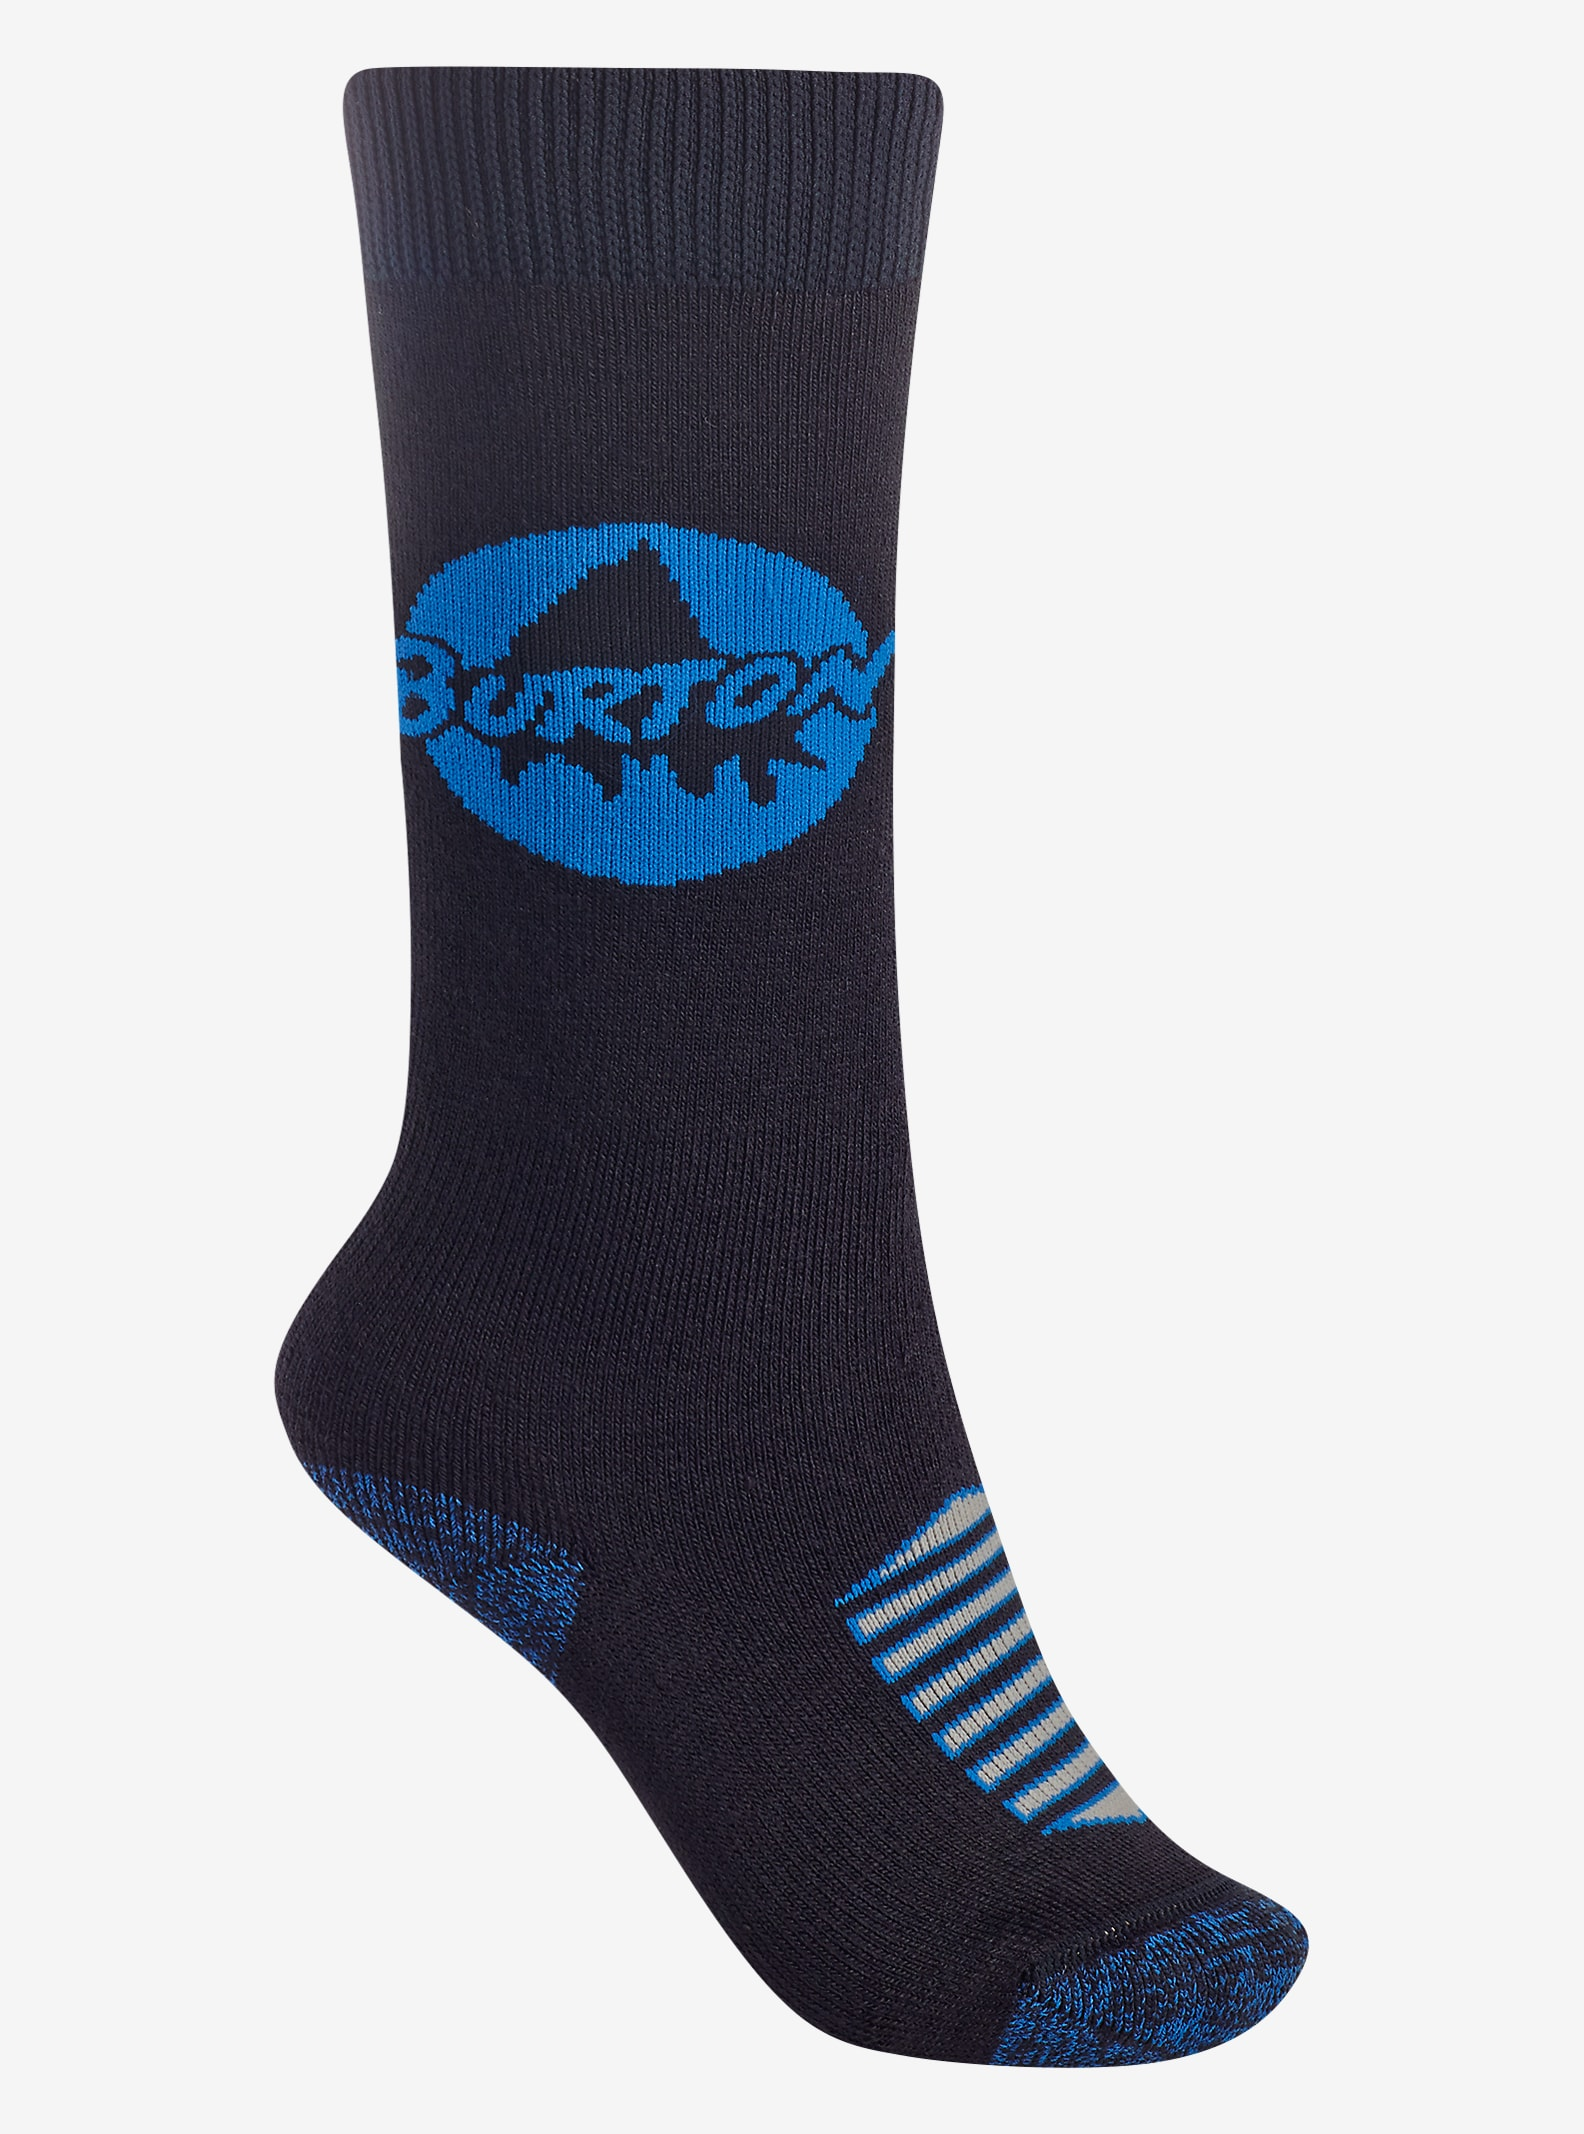 Burton Boys Weekend Sock Two-Pack shown in True Black